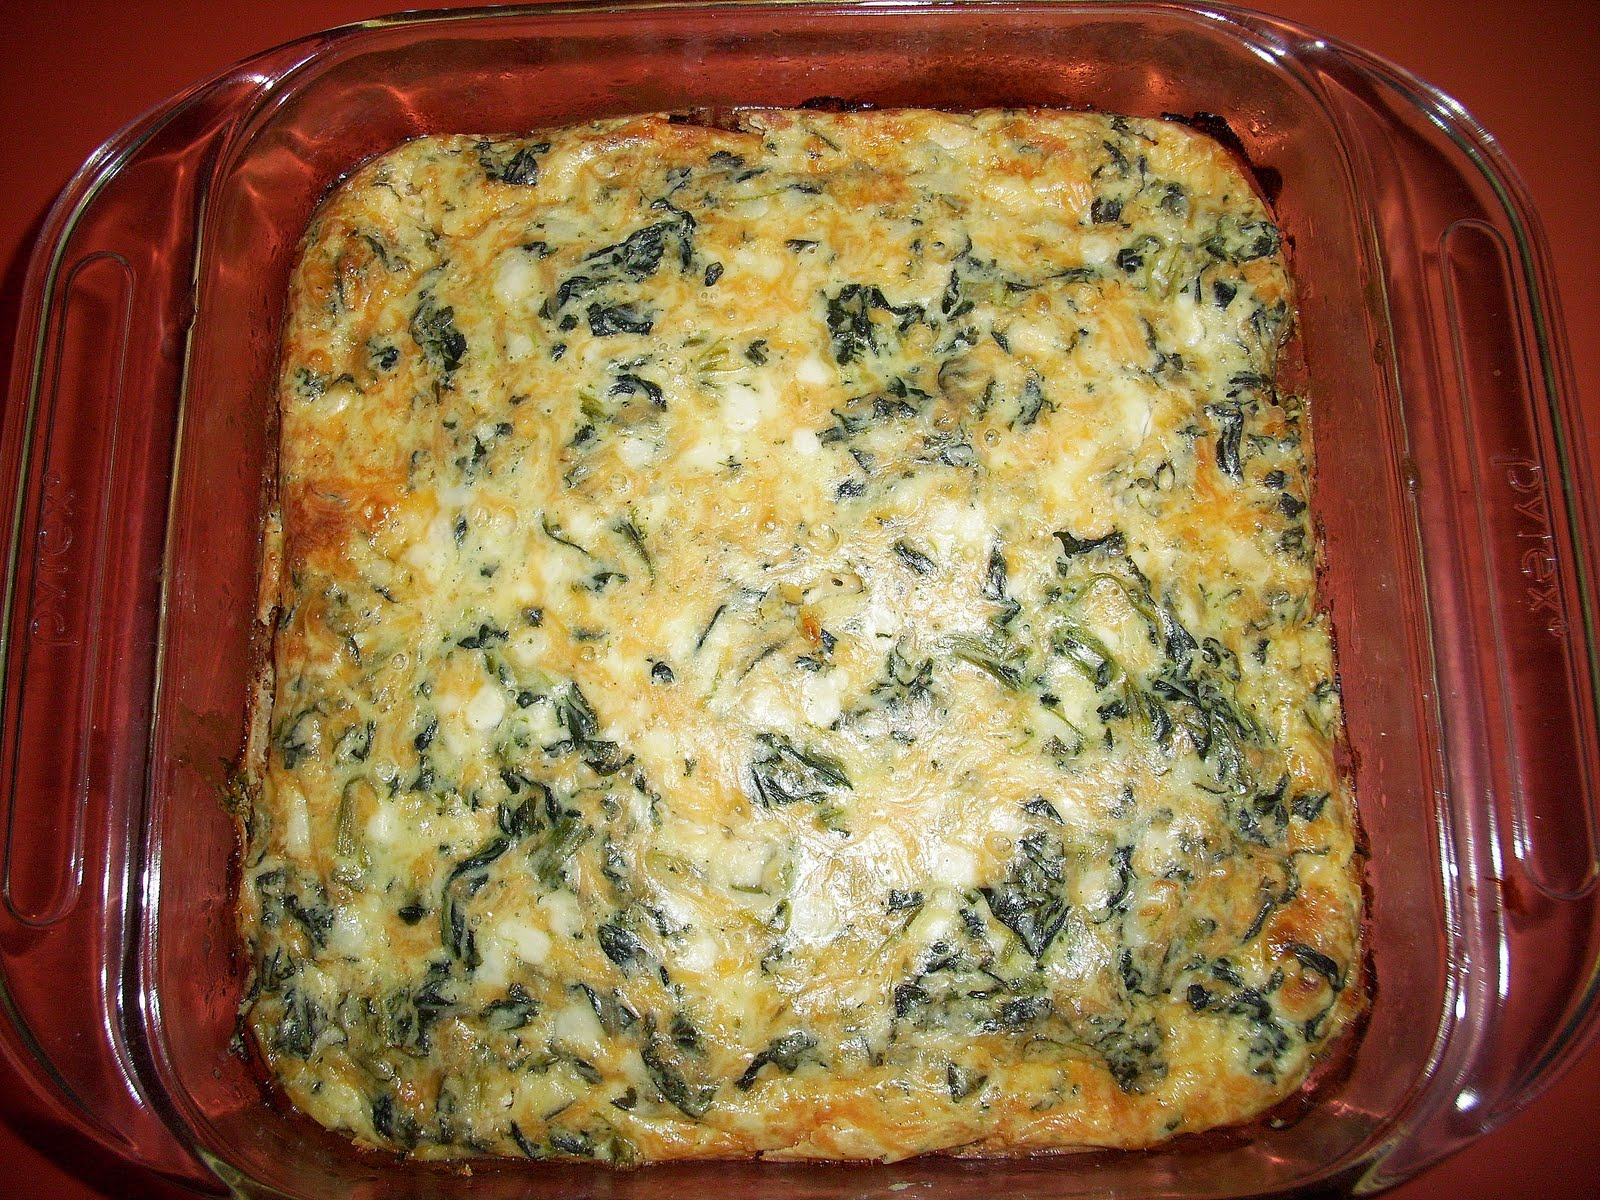 The Tote Trove: Paula Deen's Crustless Spinach Cheese Quiche